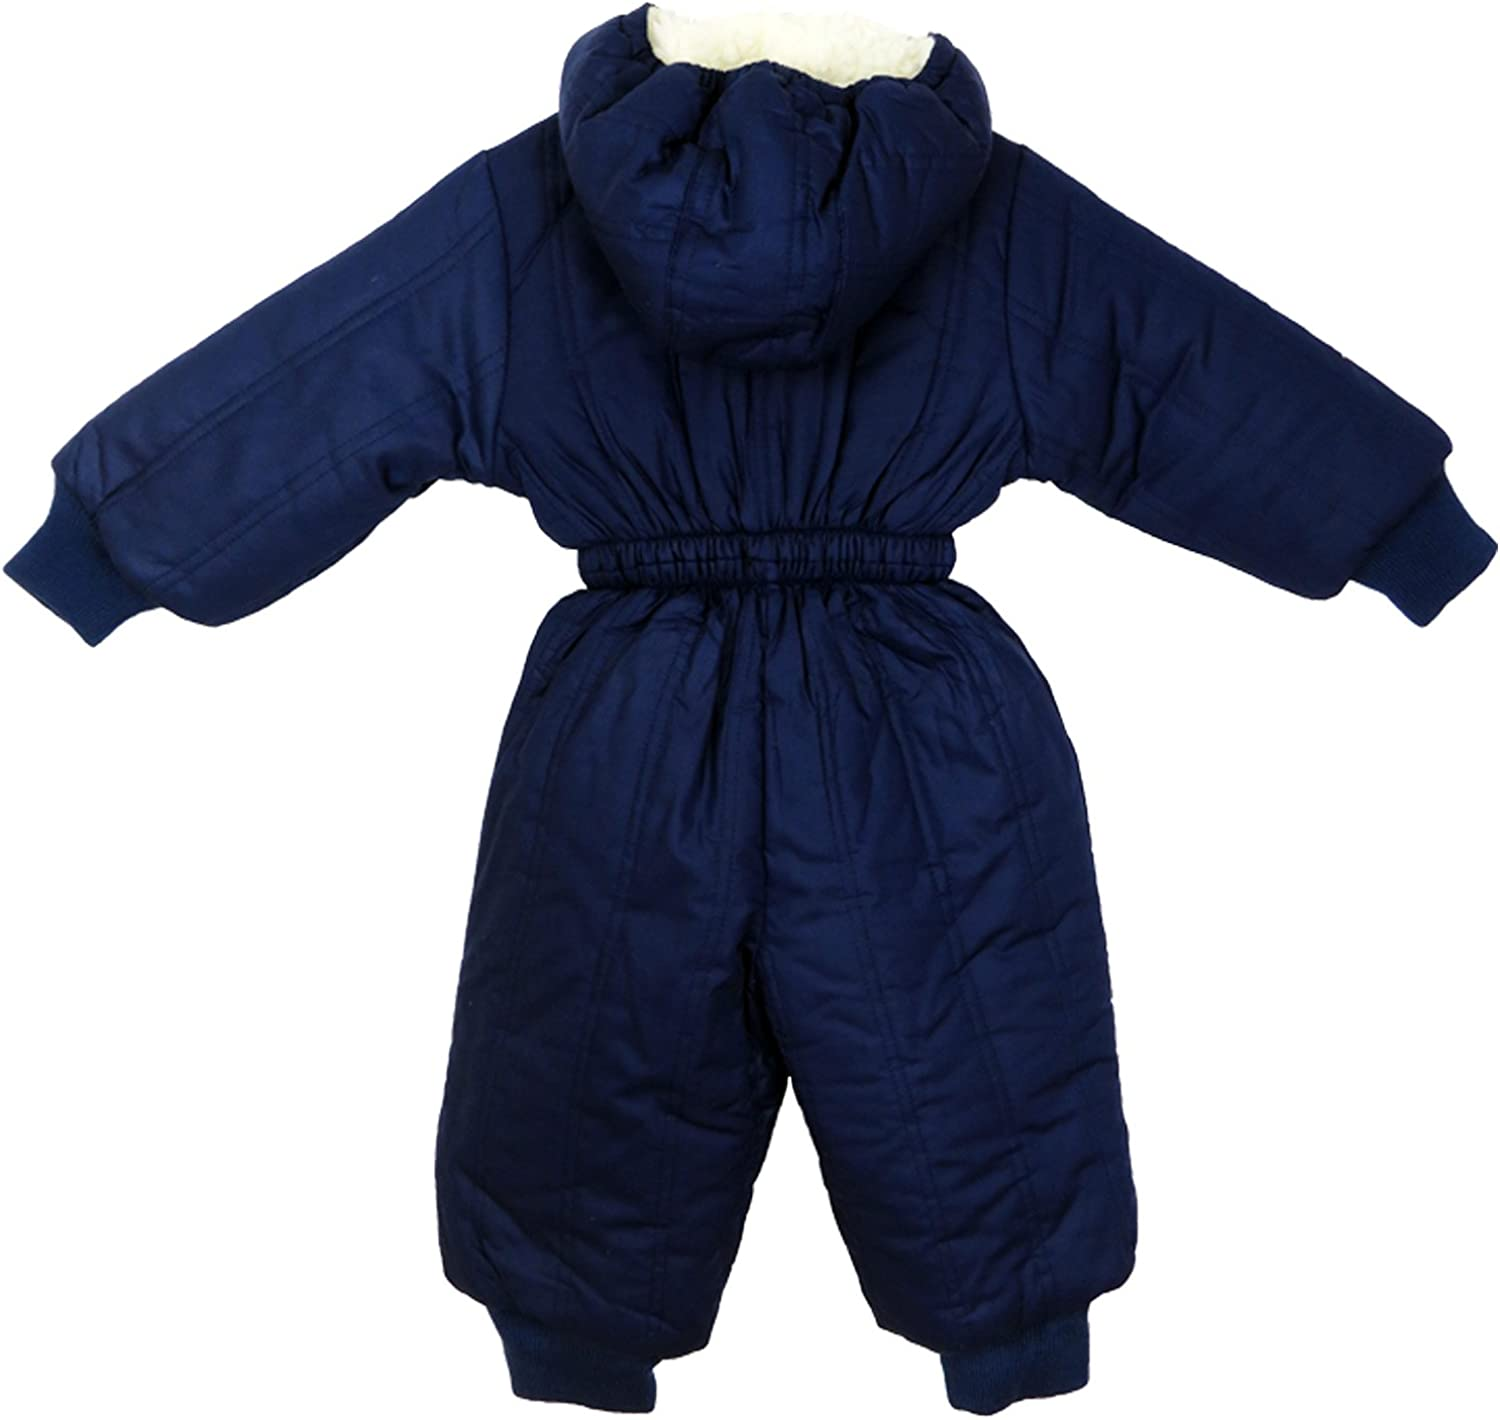 Kids Blue Padded All-in-One Waterproof Suit Snowsuit Childs Childrens Boys Girls 12-18Months